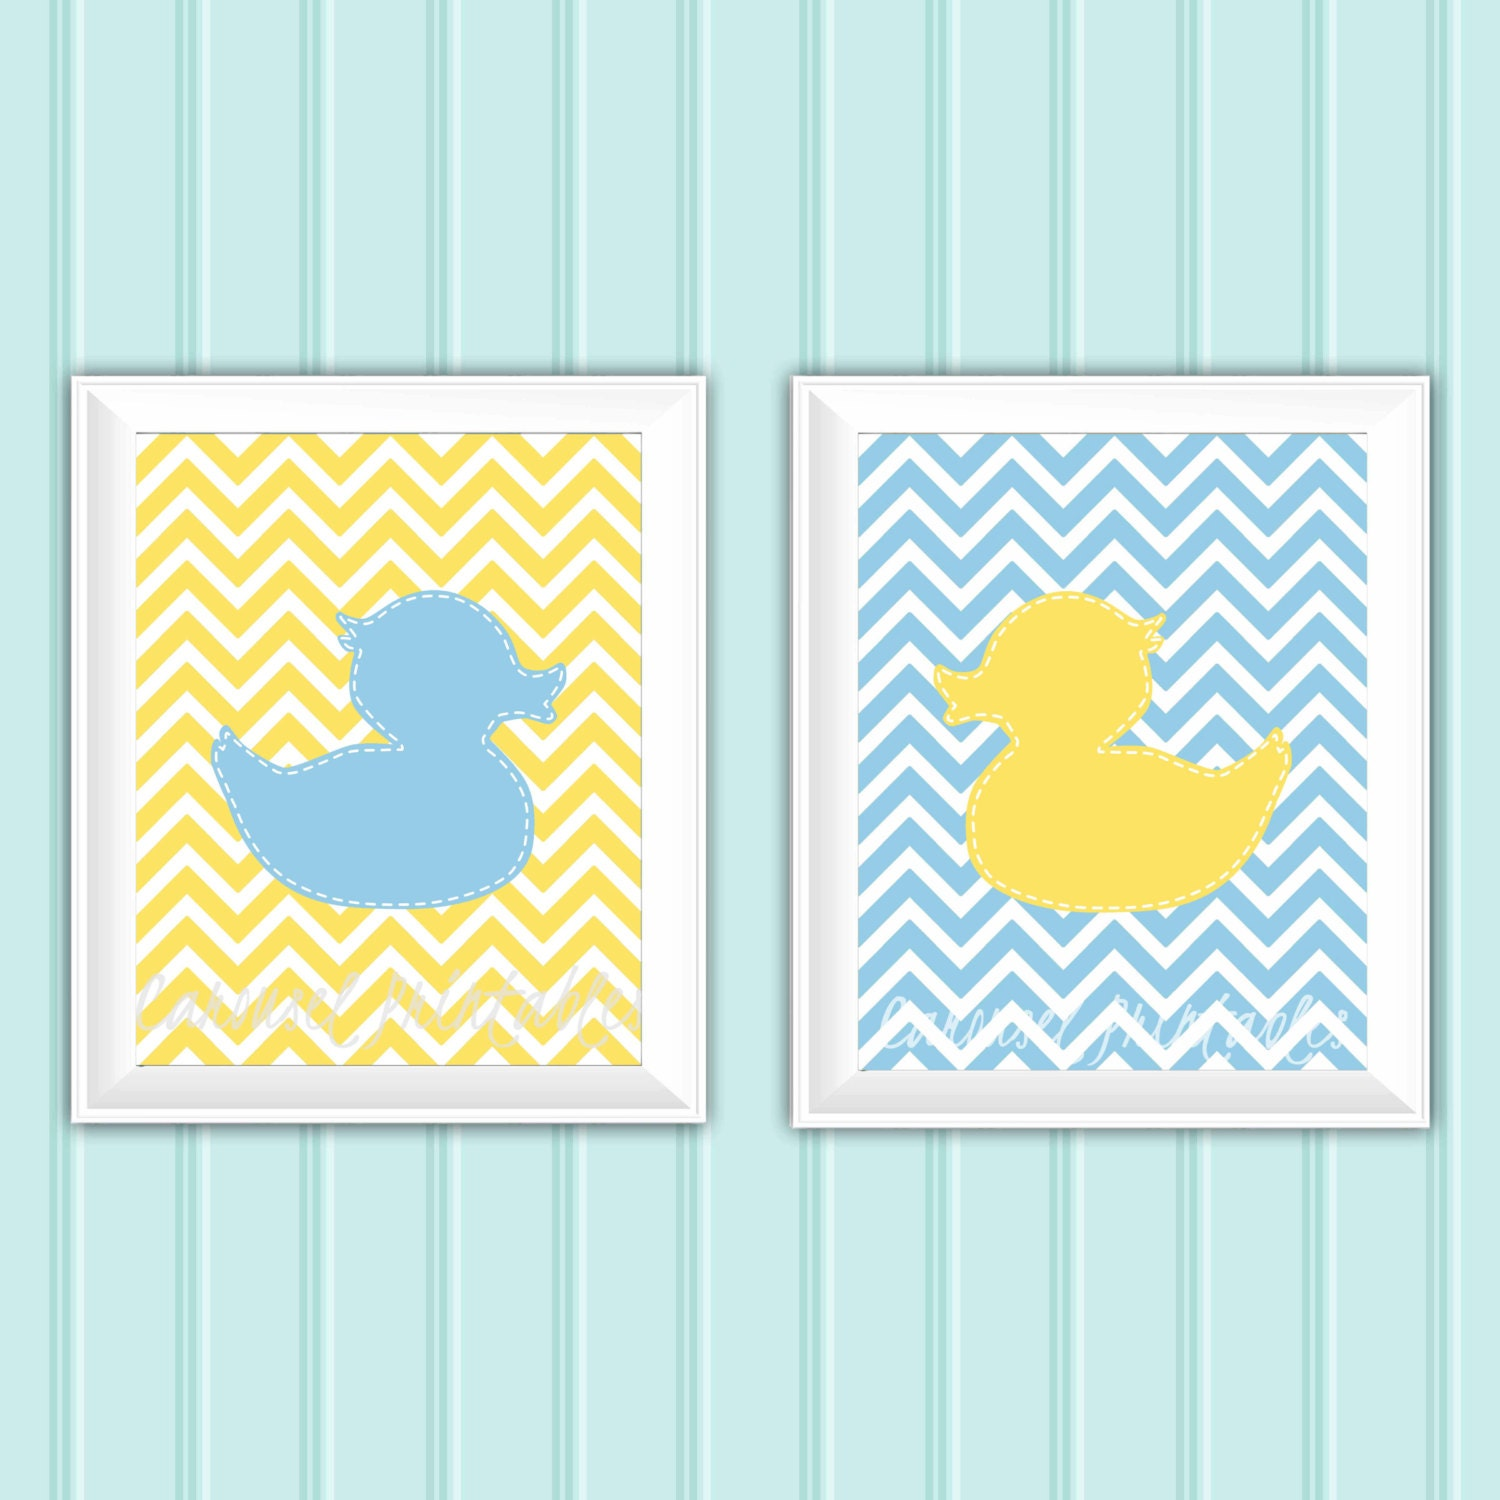 Rubber Duck Wall Art, Bathroom Wall Art,Printable Wall Art,Instant ...